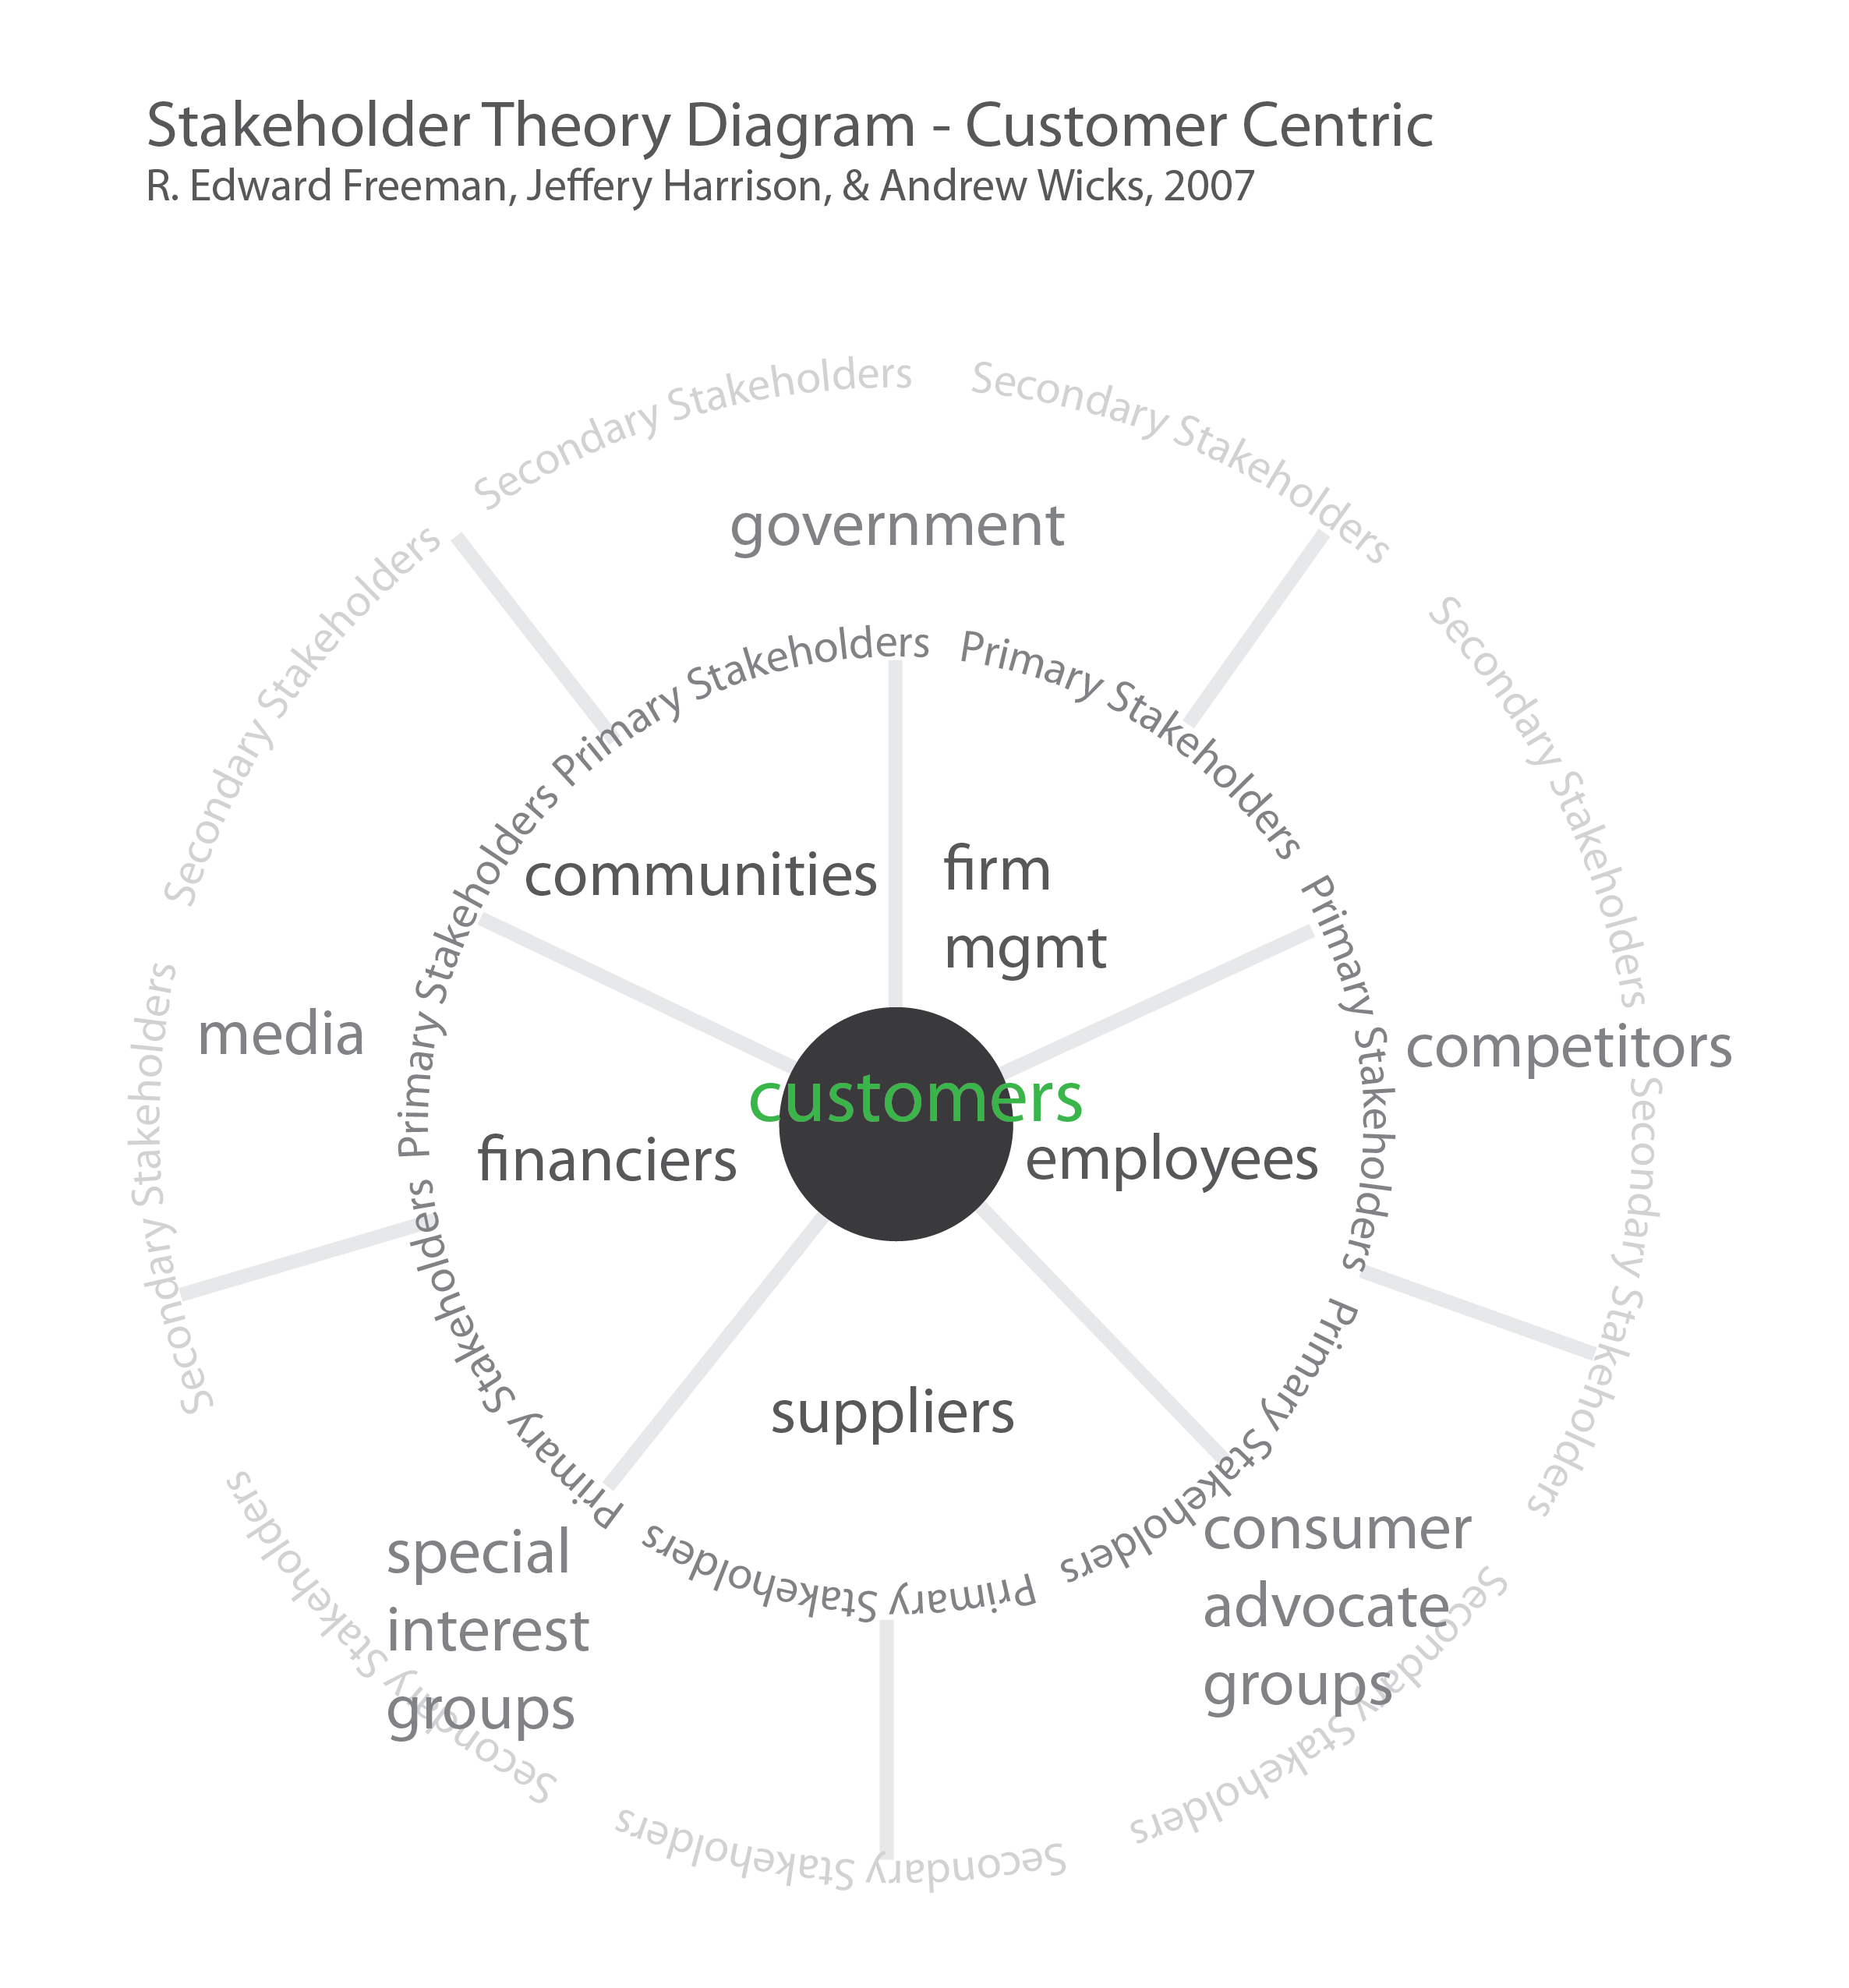 Graphic sociology stakeholder theory diagram customer centric based on r edward freeman pooptronica Gallery